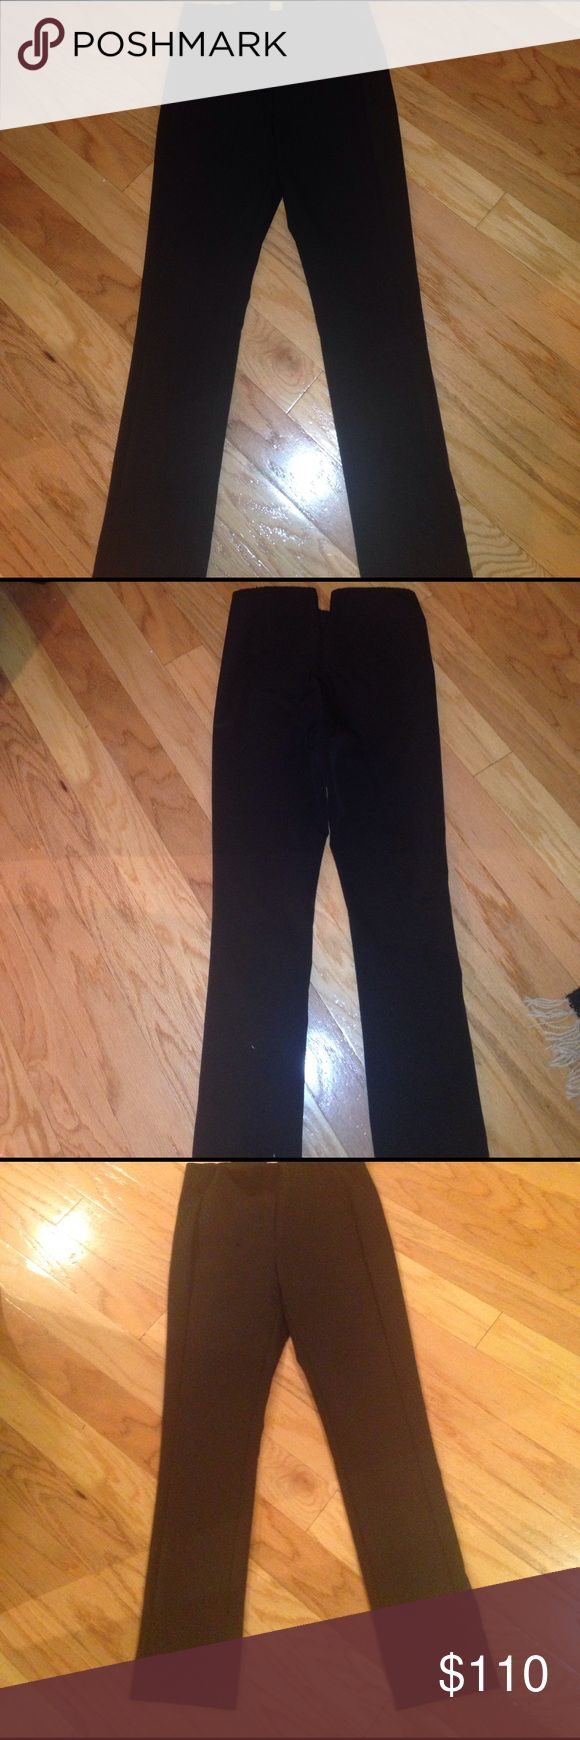 """Theory """"navalene jetty"""" stretch skinny pants. Purchase this season (winter 2017) from Trunk Club in a moment where I forgot what I look best in. Never worn but please note *tags were removed for hemming*. The pants are hemmed to approximately 25"""" inseam. (On the rack they are advertised as 28.5"""" inseam).  The pants are sold as """"shape defining stretch"""". No pockets. Back zipper. Theory Pants Skinny"""